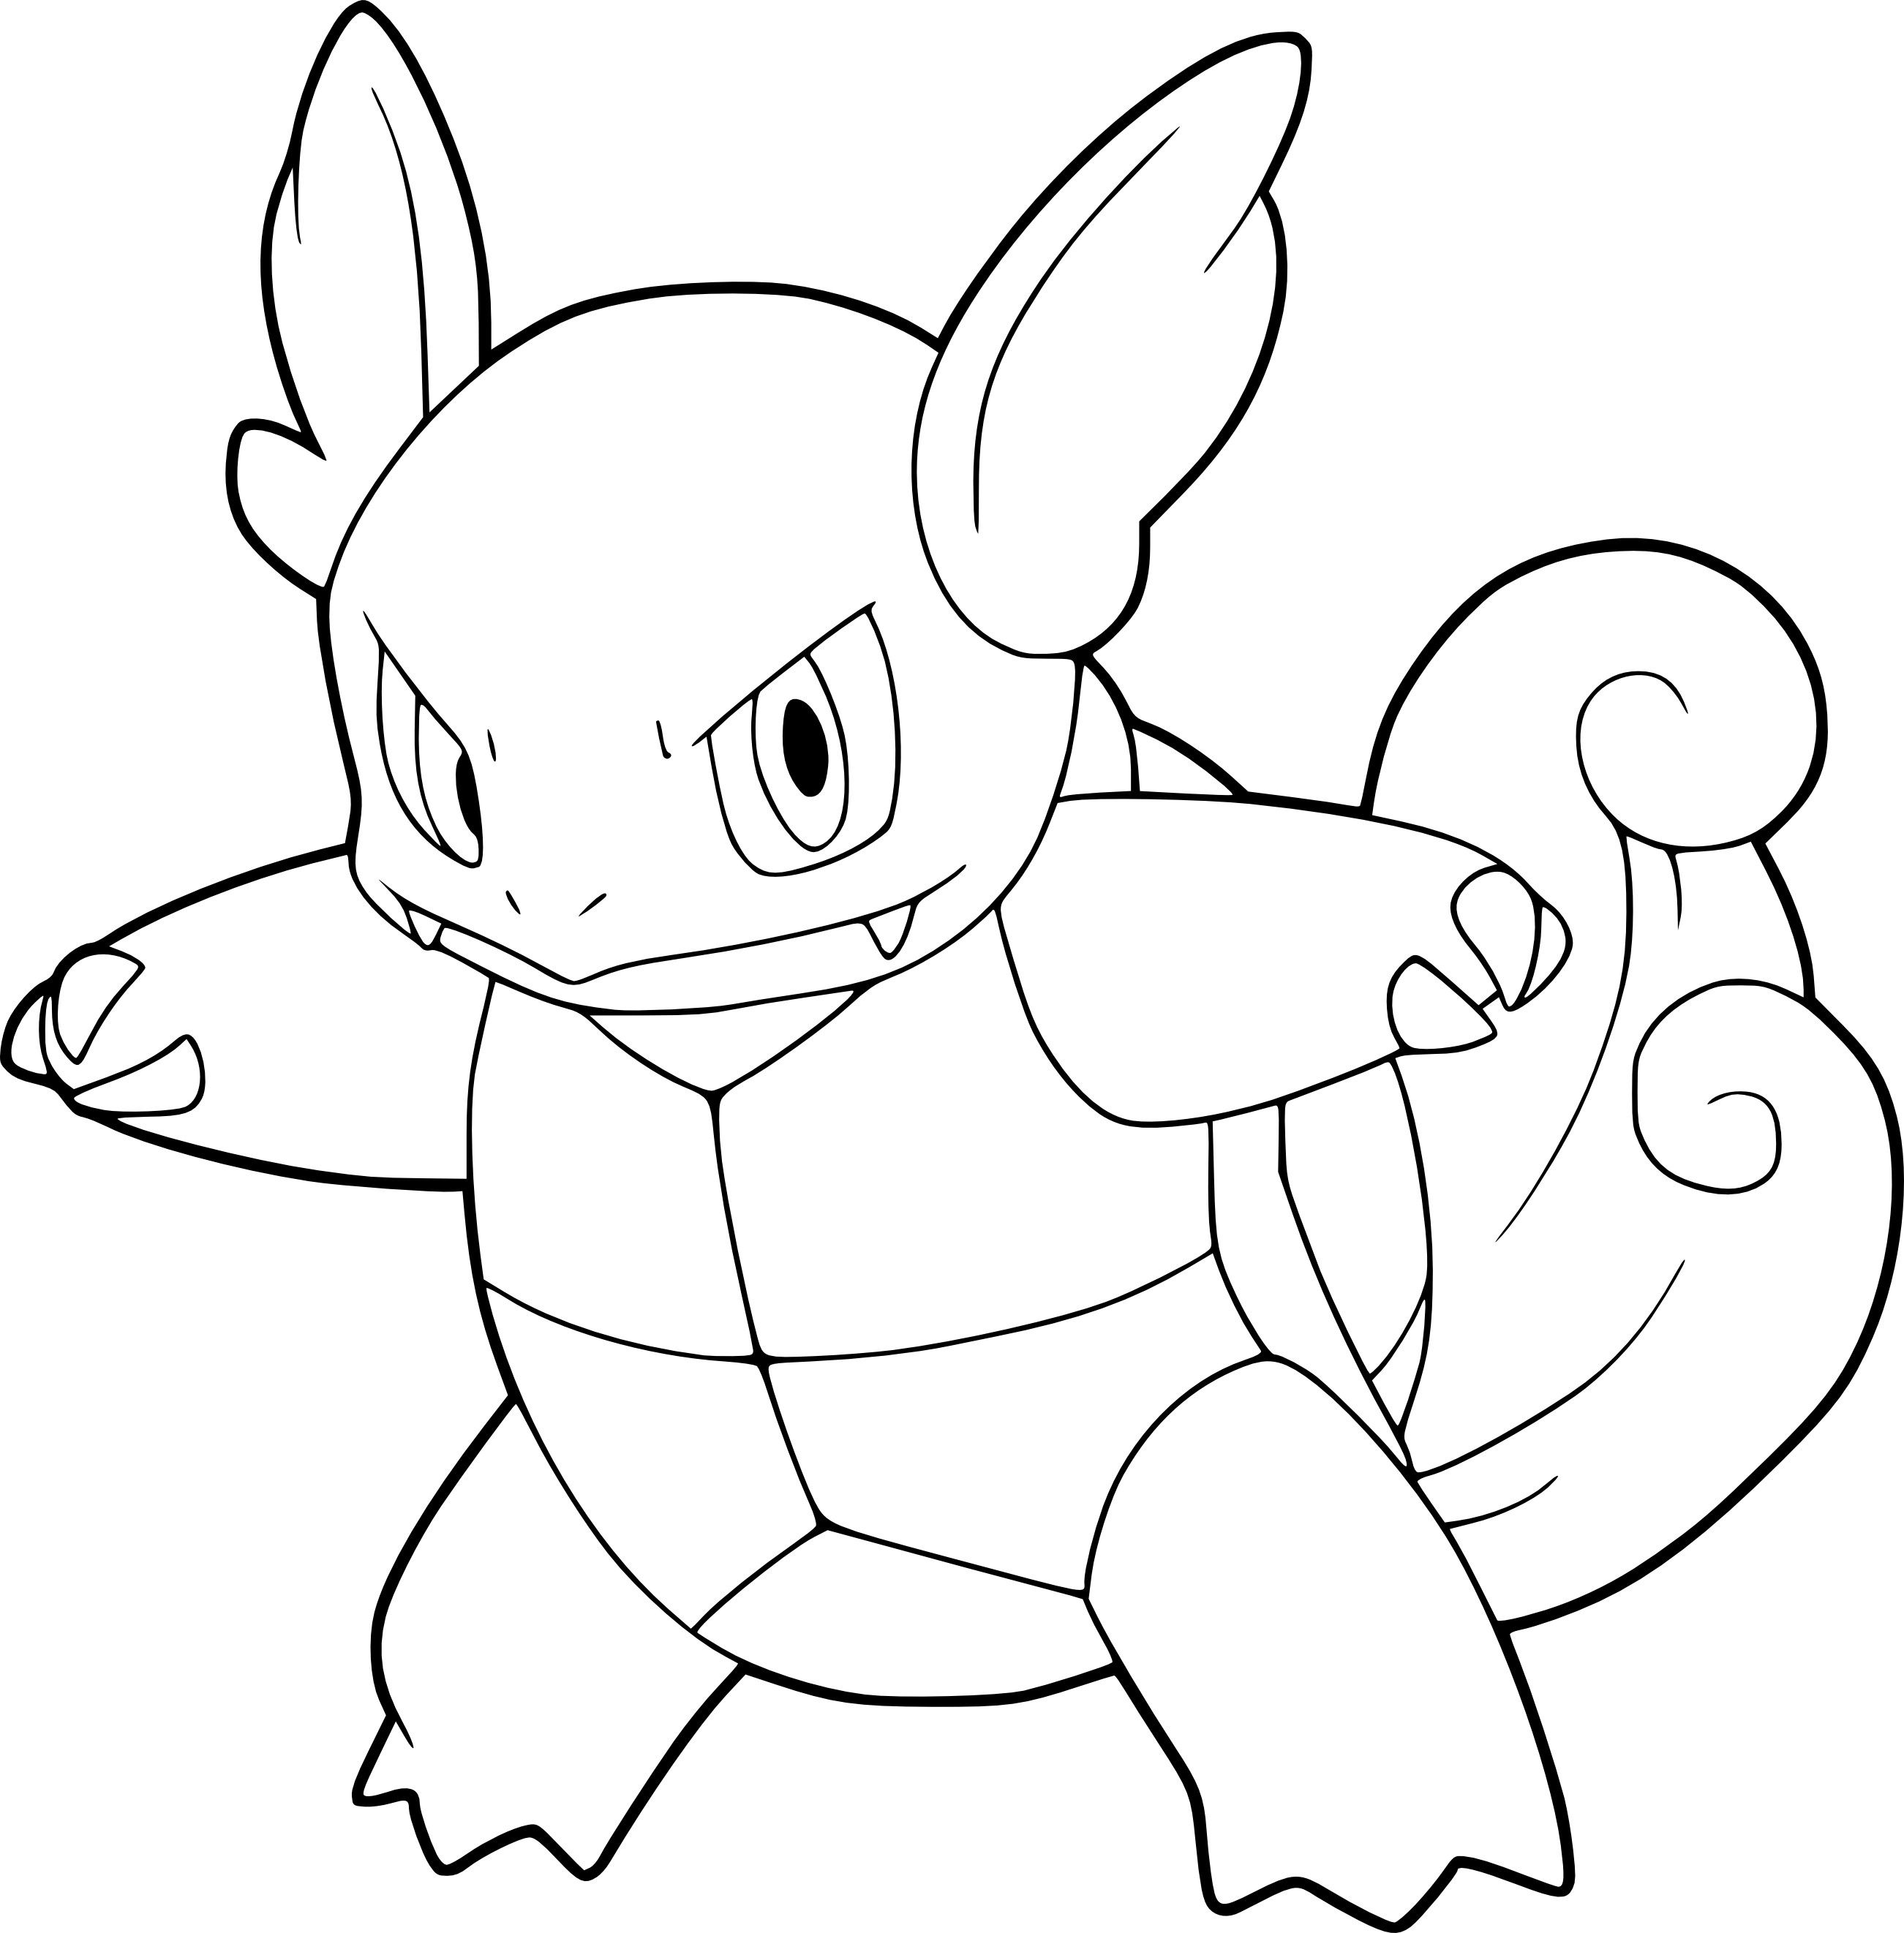 Charmander Coloring Page New Enchanting Charmander Coloring ...